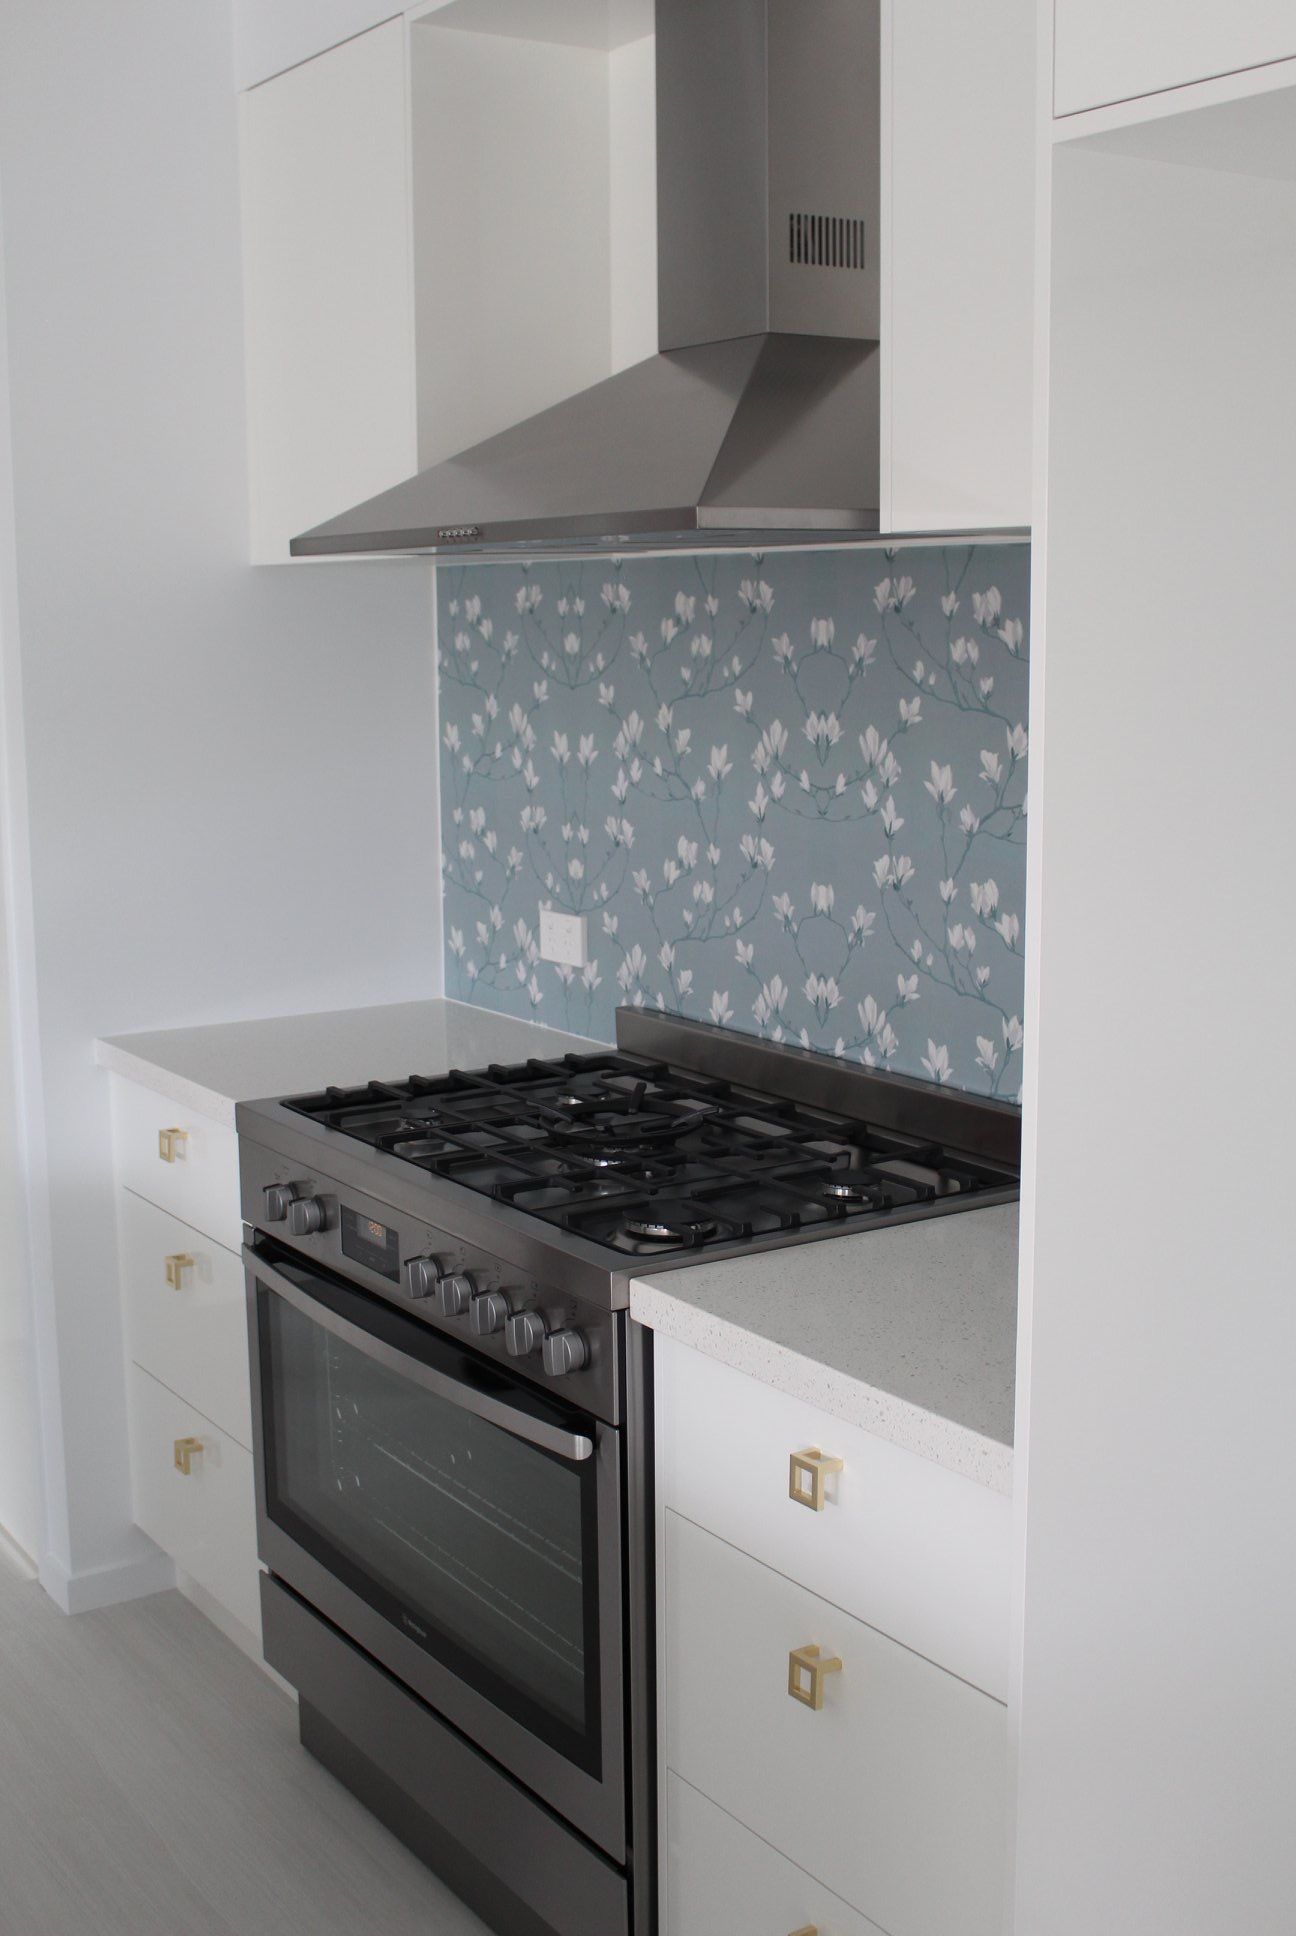 - DecoSplash Is Made Of 100% Solid Aluminium That Is Completely Non